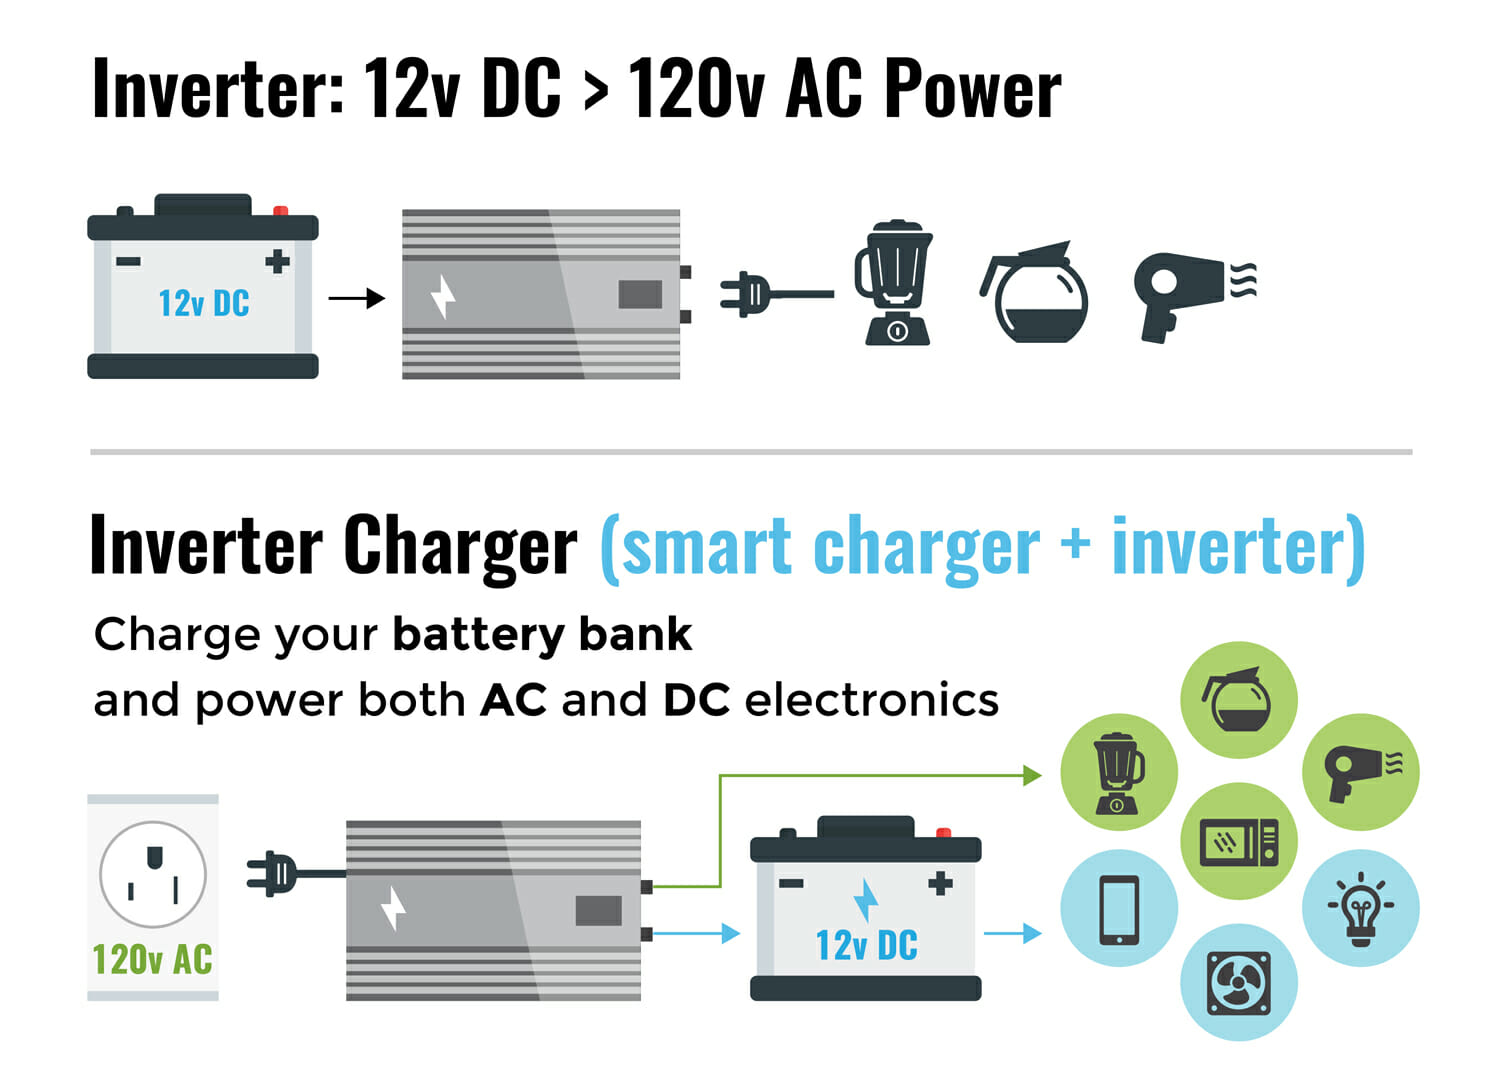 differences between an inverter and an inverter/charger for an RV or motorhome